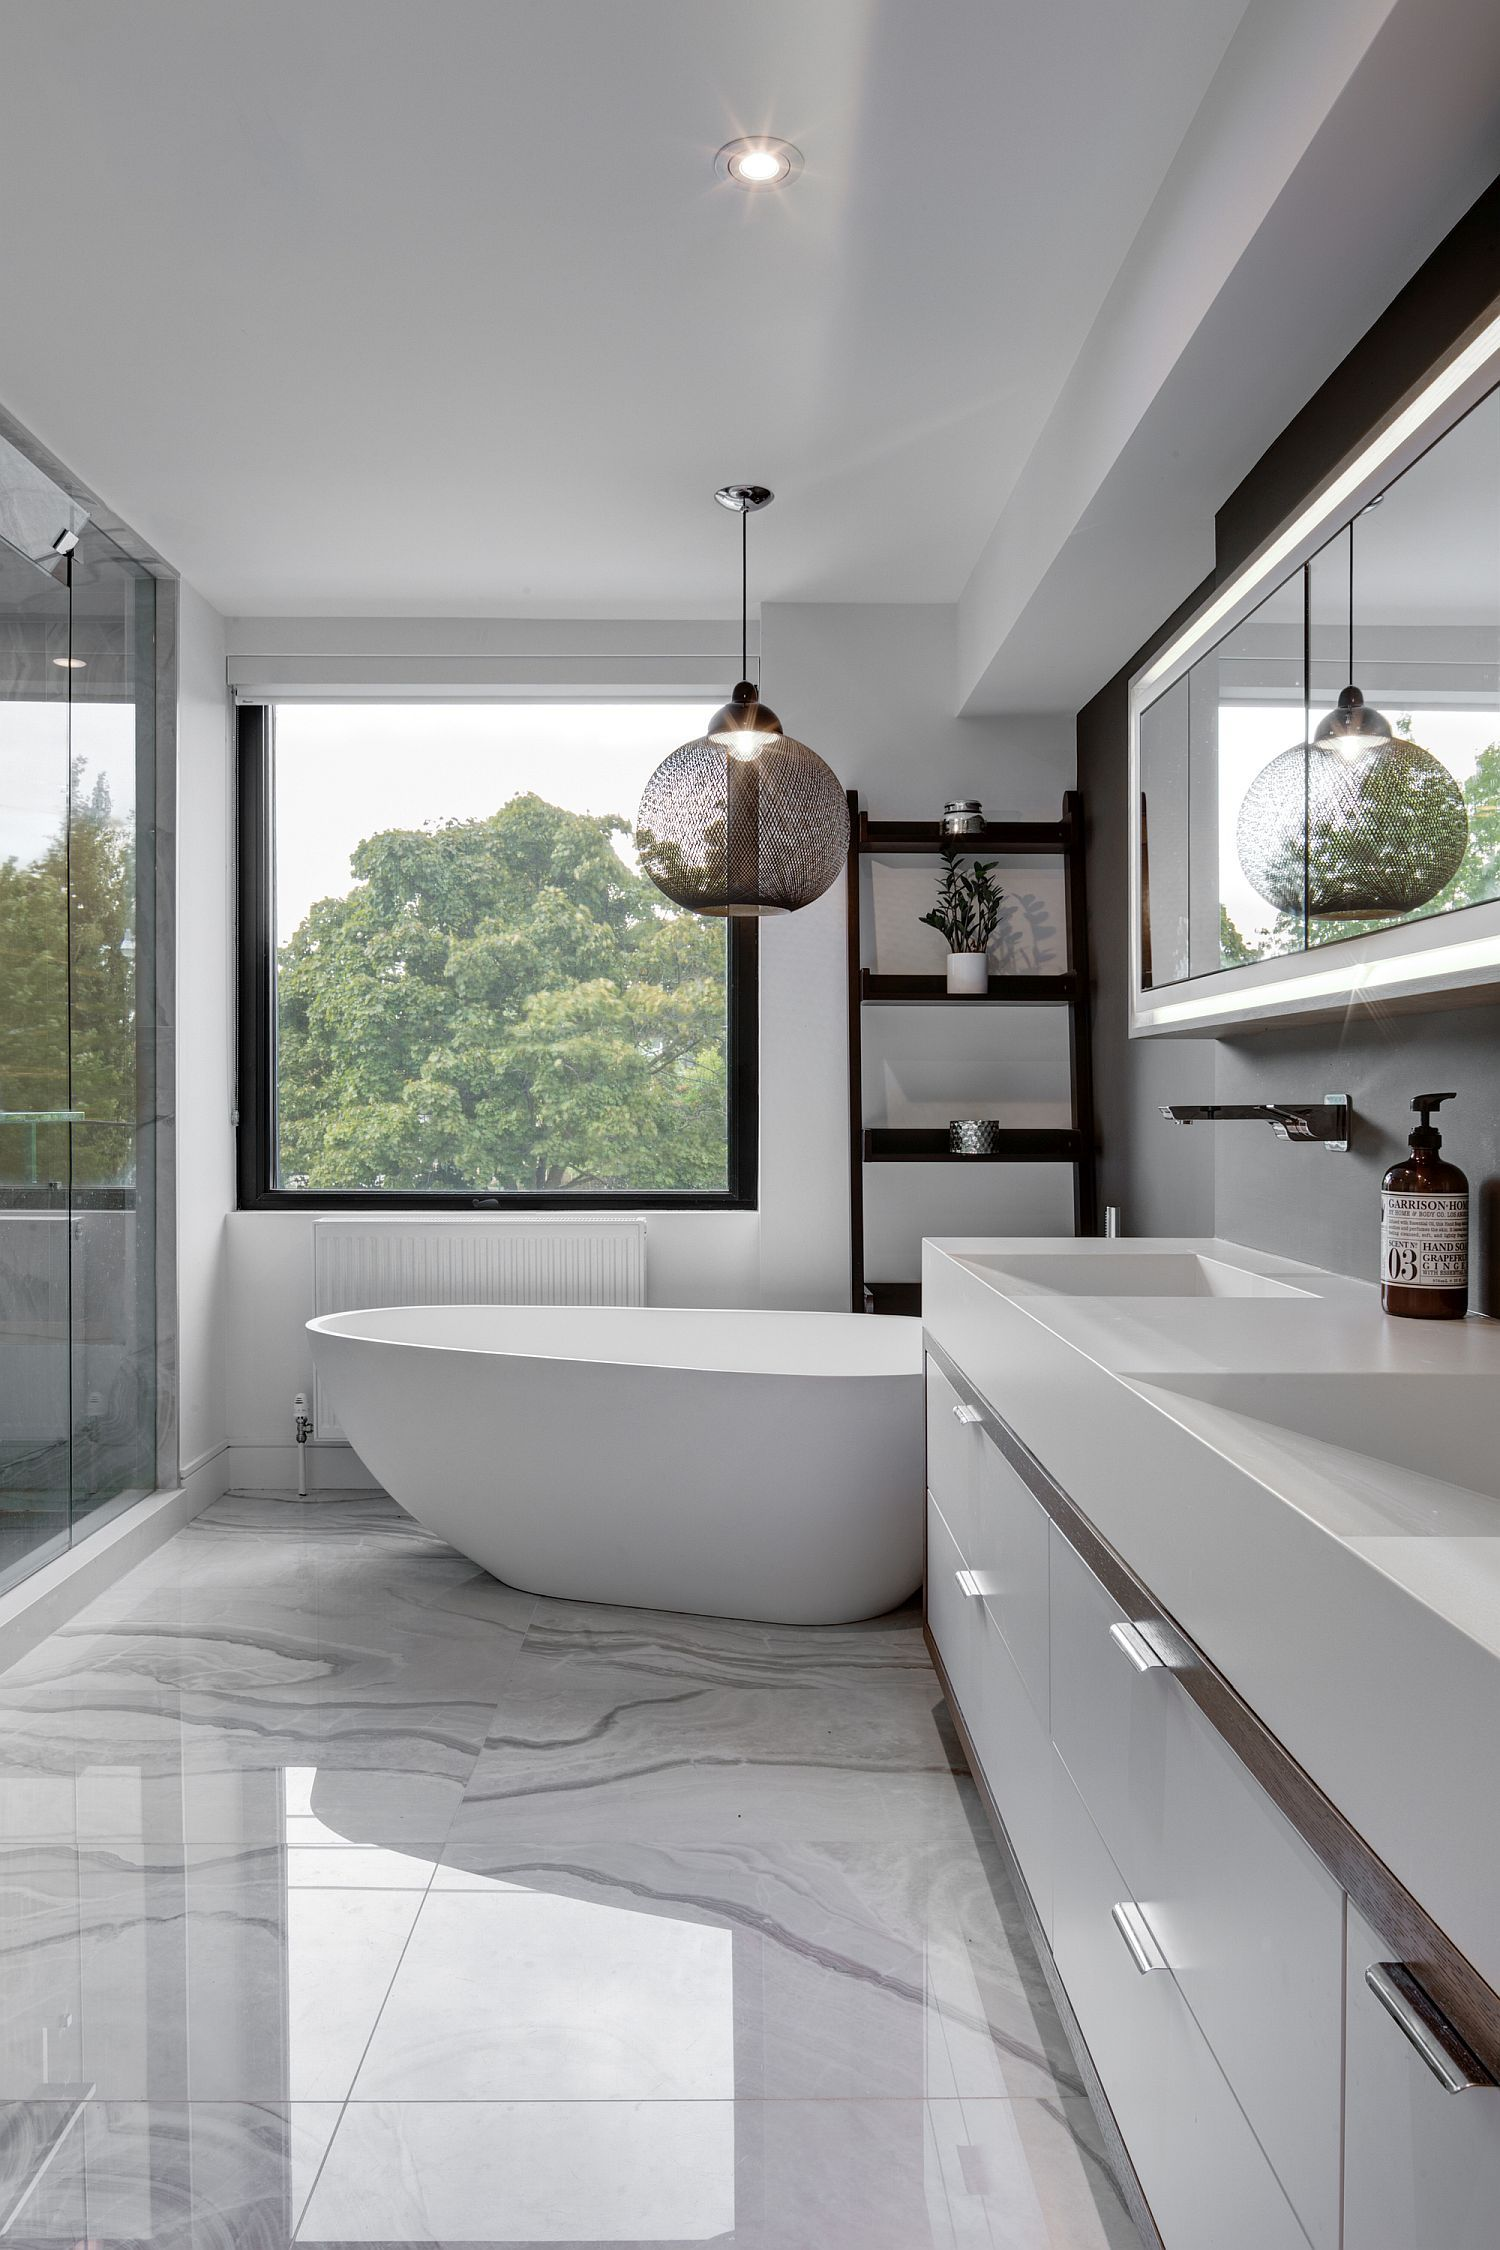 Ny House Bringing A Dash Of New York Into A Modern Toronto Home Bathroom Design Decor Modern Home Interior Design Modern Bathroom Design